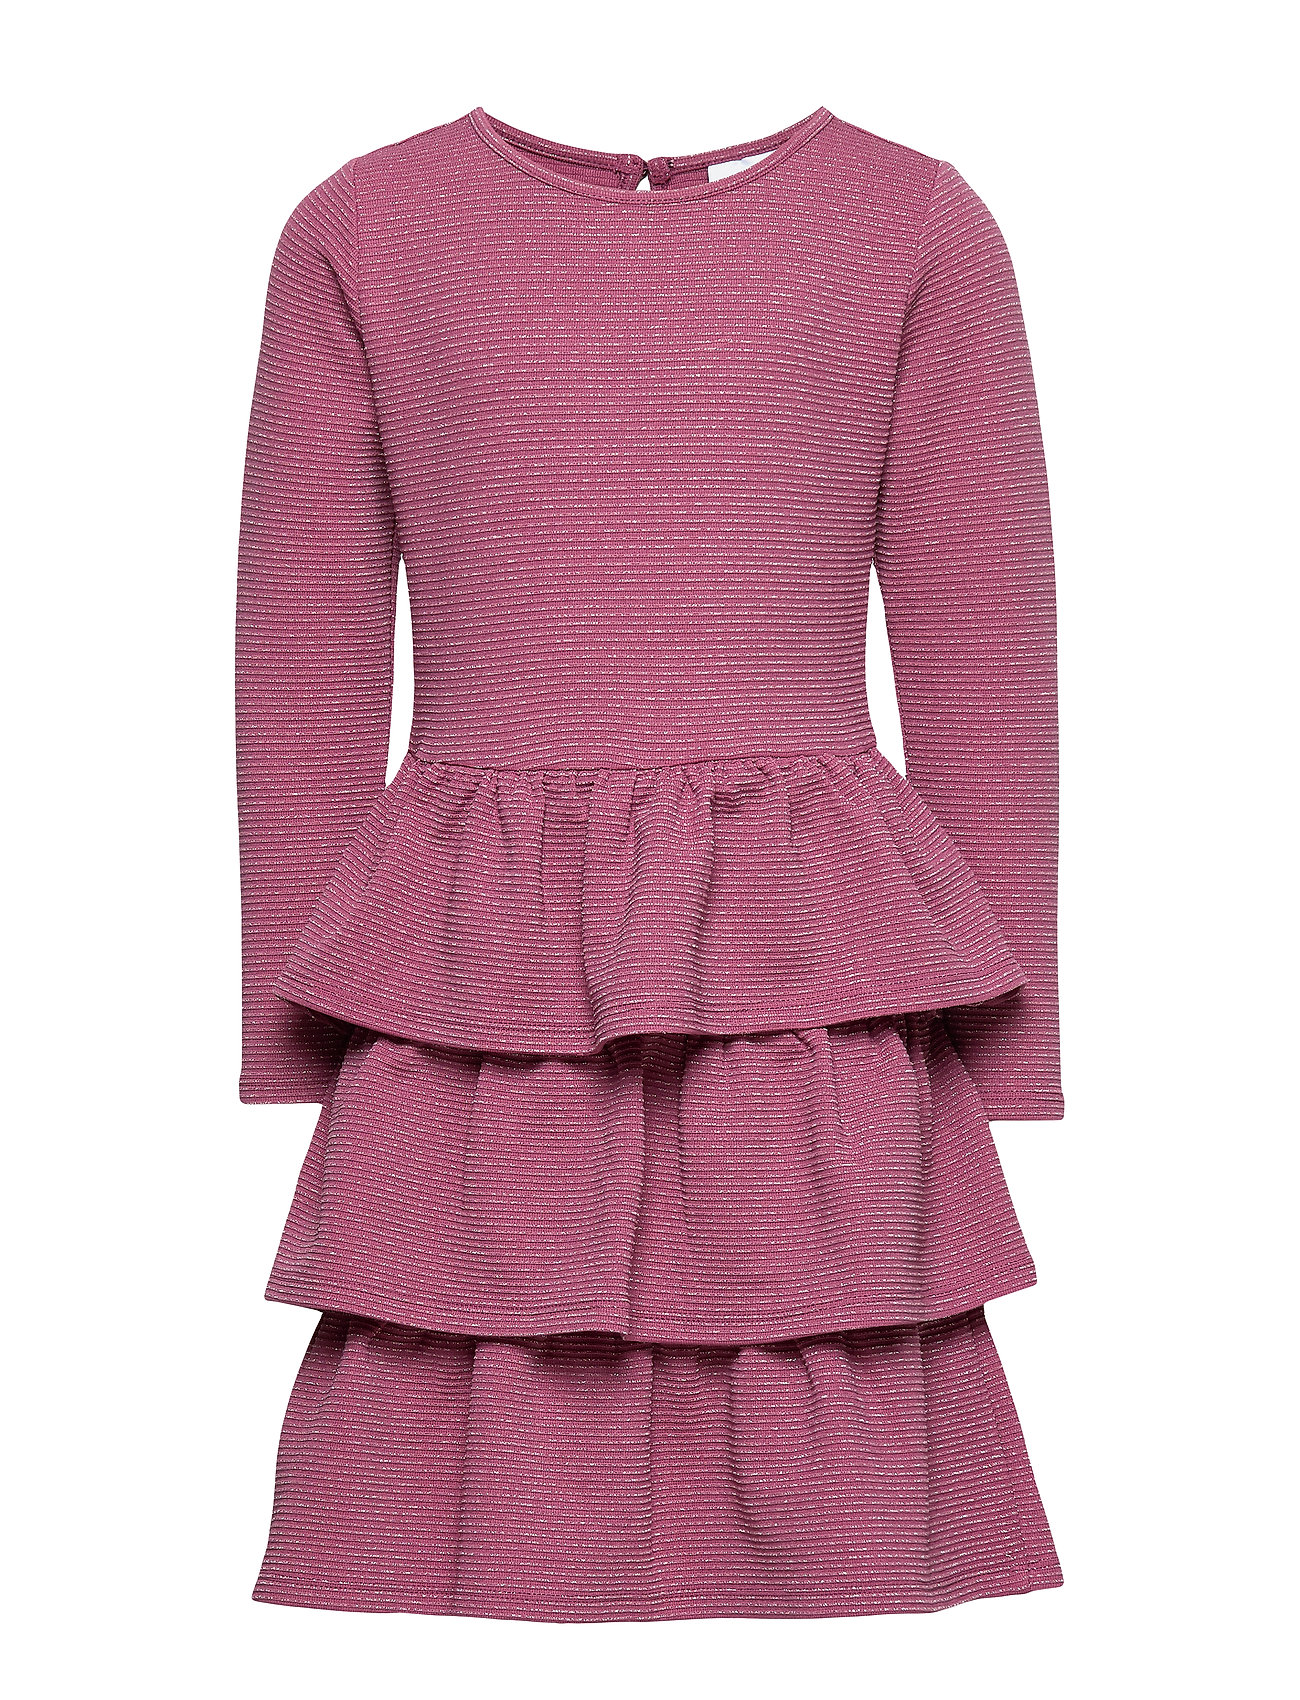 Image of Filly L_s Dress Exp Kjole Lilla The New (3271519077)